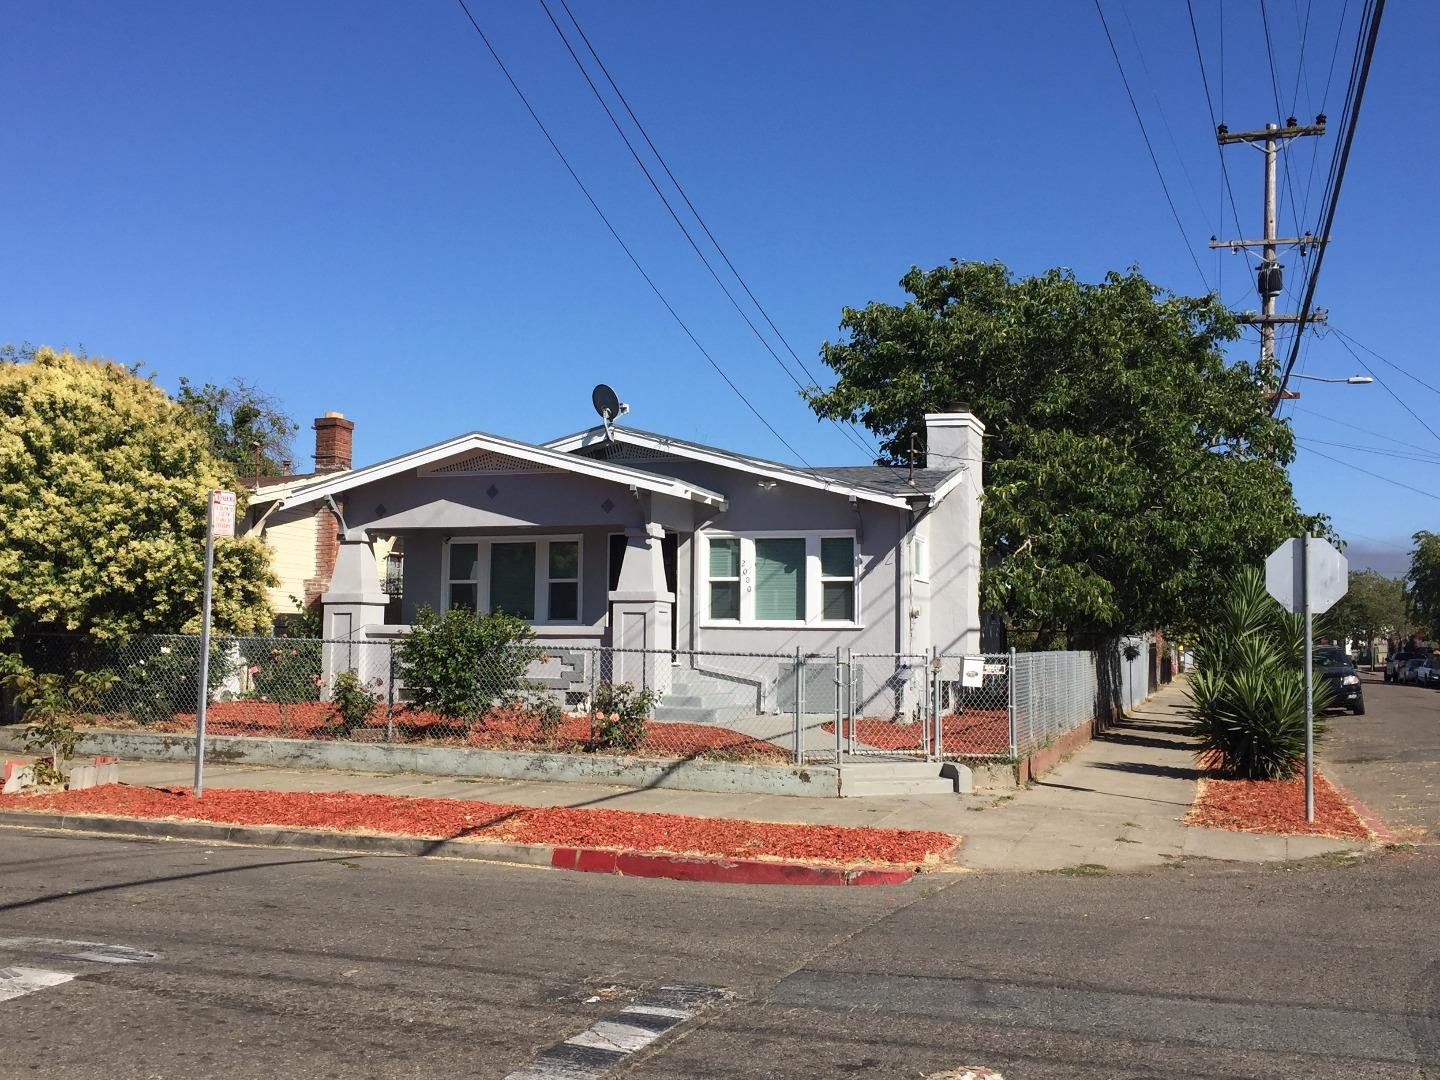 Additional photo for property listing at 2000 84th Avenue  Oakland, California 94621 United States